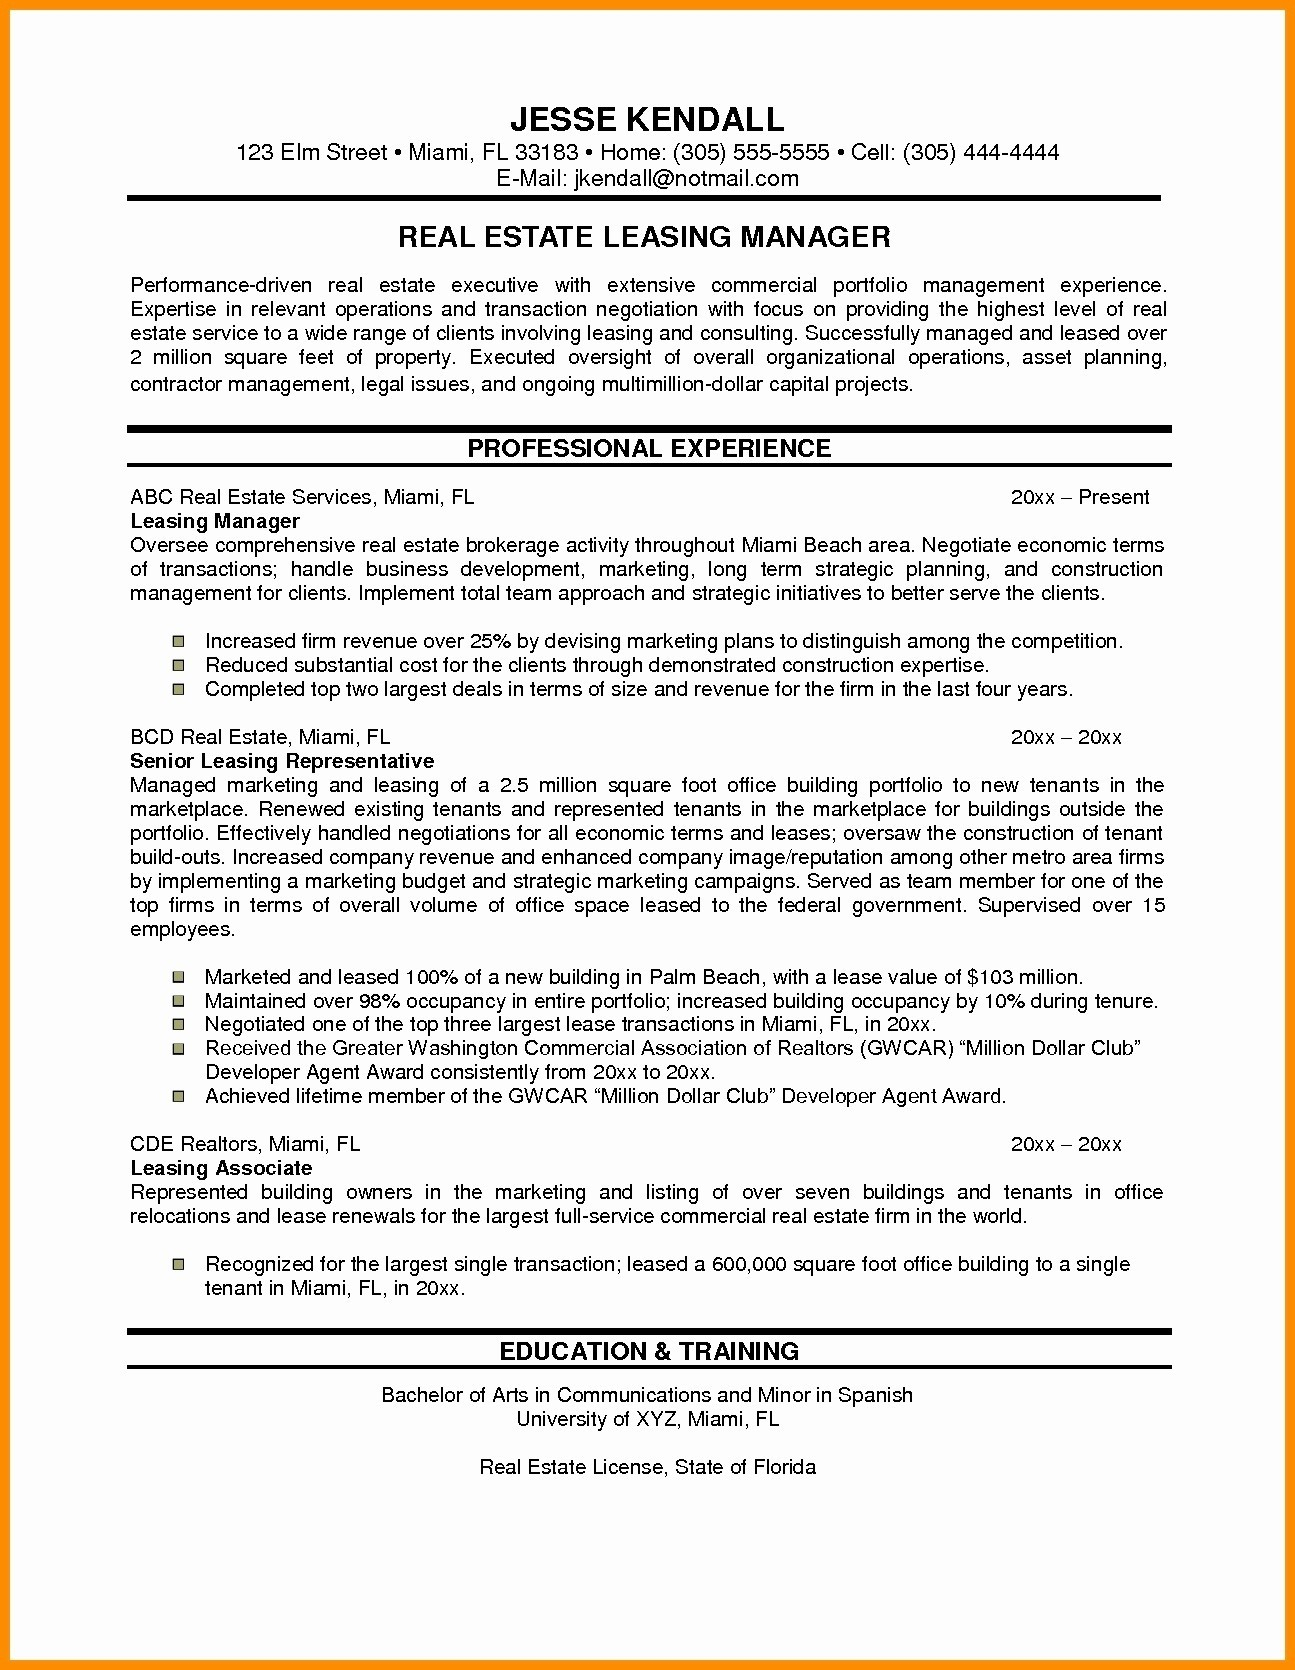 real estate resume template example-Management Cover Letter New Sample Resume For Property Manager Bsw Resume 0d Property Management 3-r